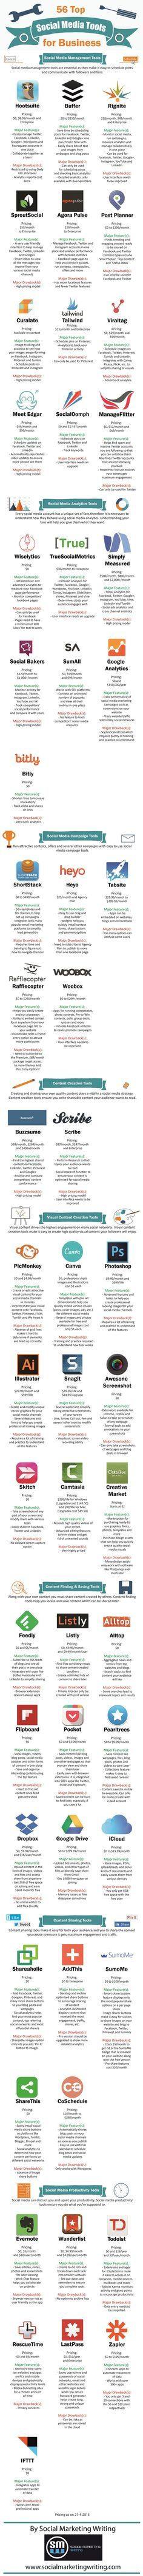 Top Social Media Marketing Tools for Business [Infographic] – Love Infographics